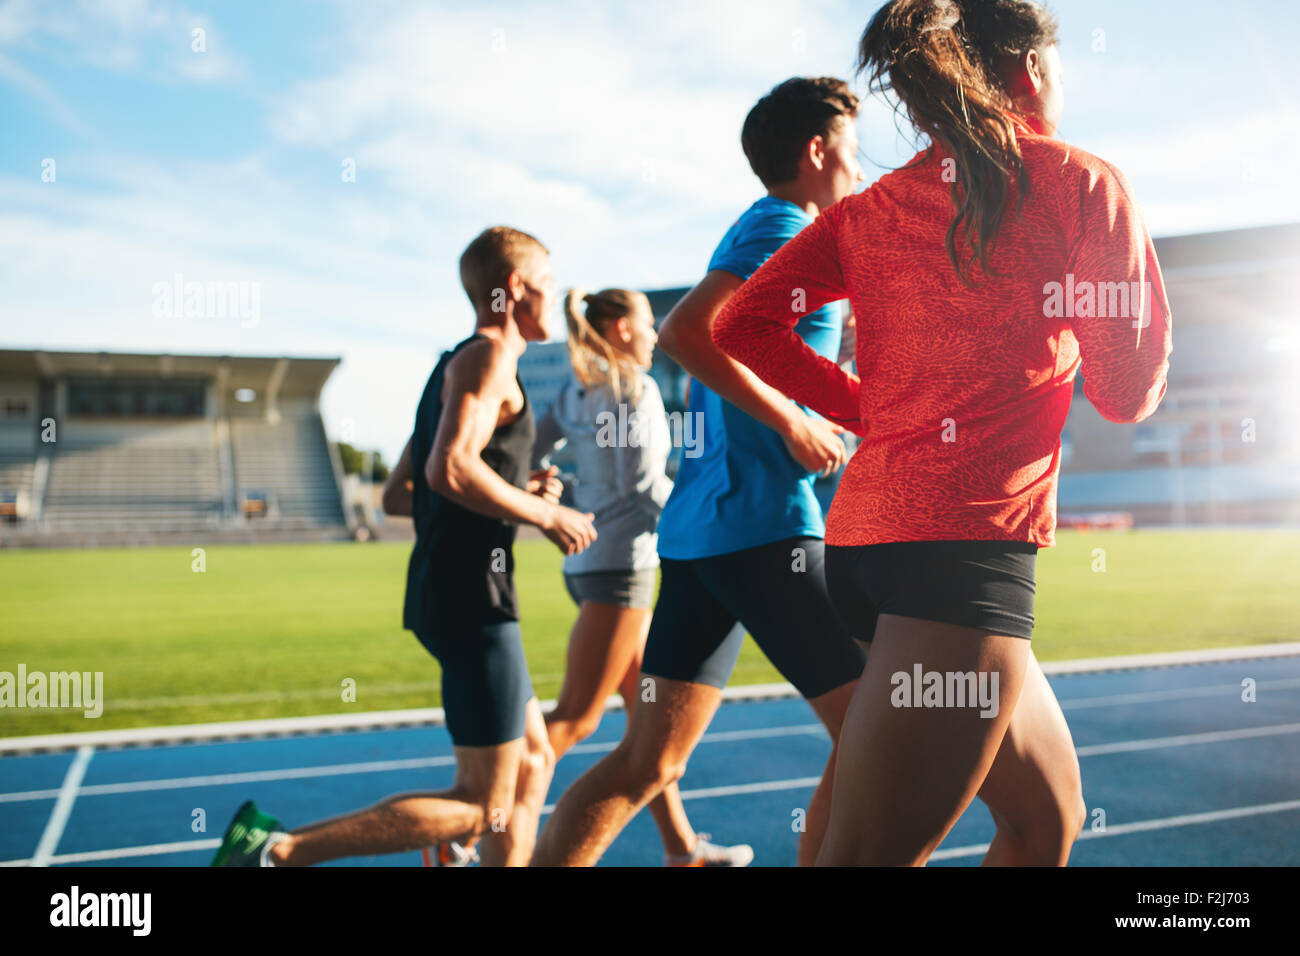 Rear view of young people running together on race track. Young athletes practicing a run on athletics stadium track. - Stock Image